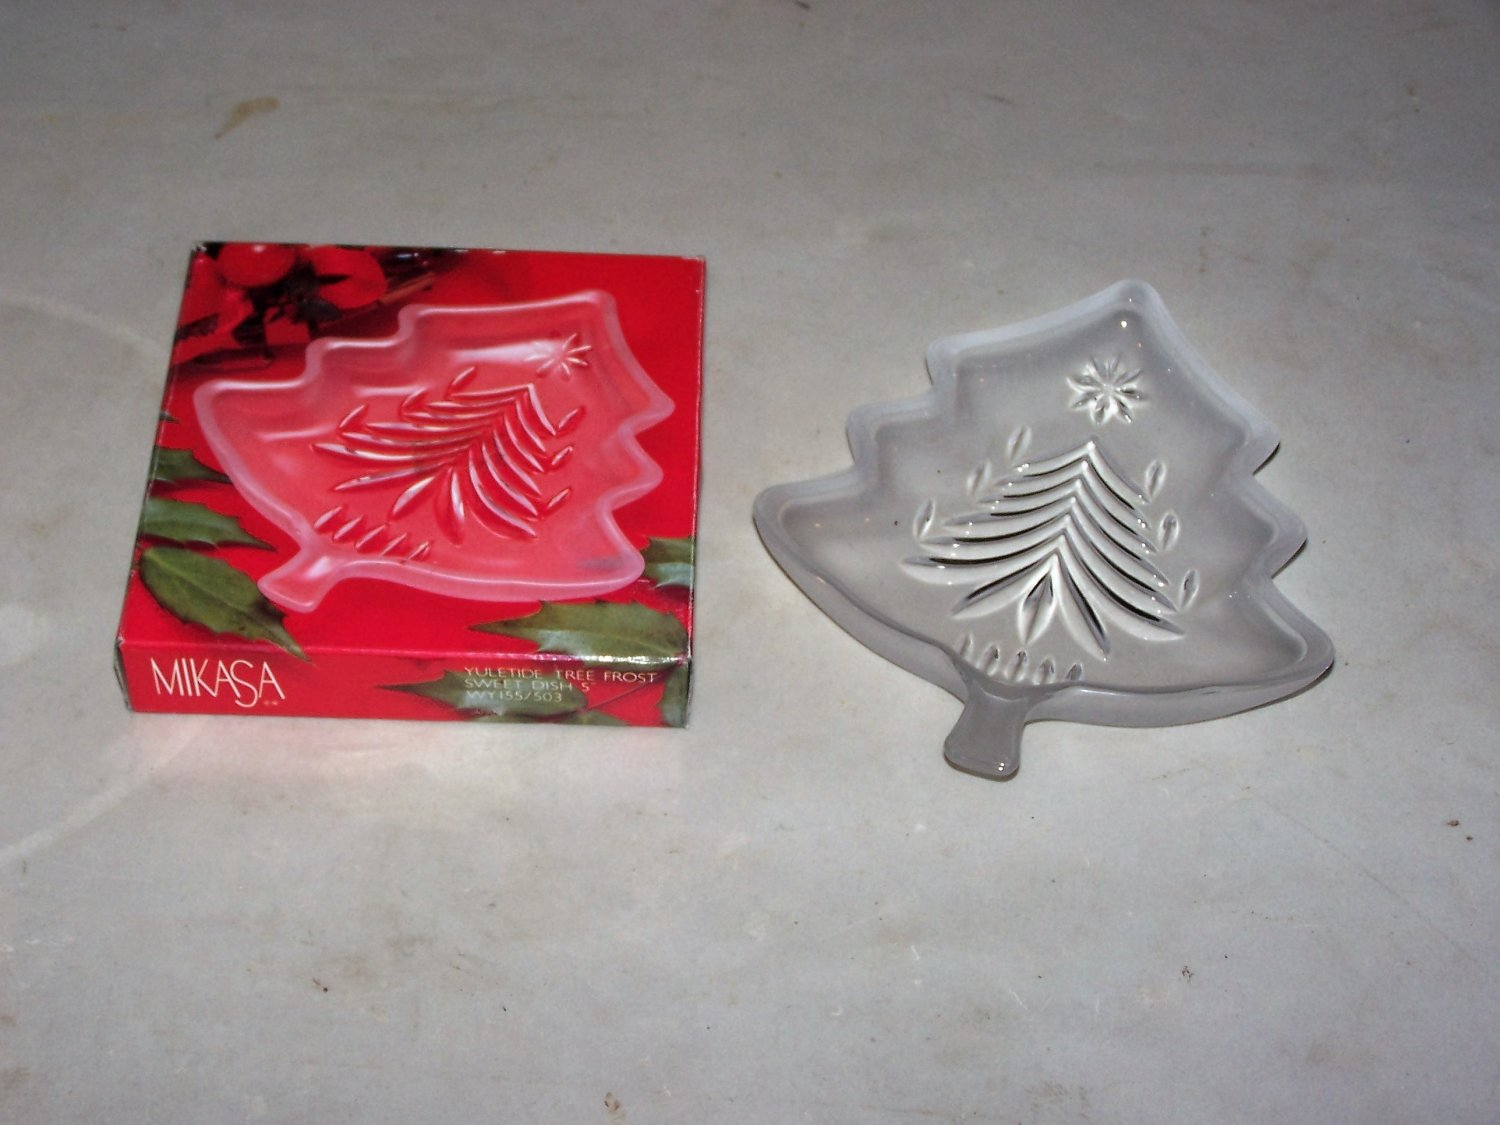 mikasa yultide tree frost sweet dish 5 inch glass